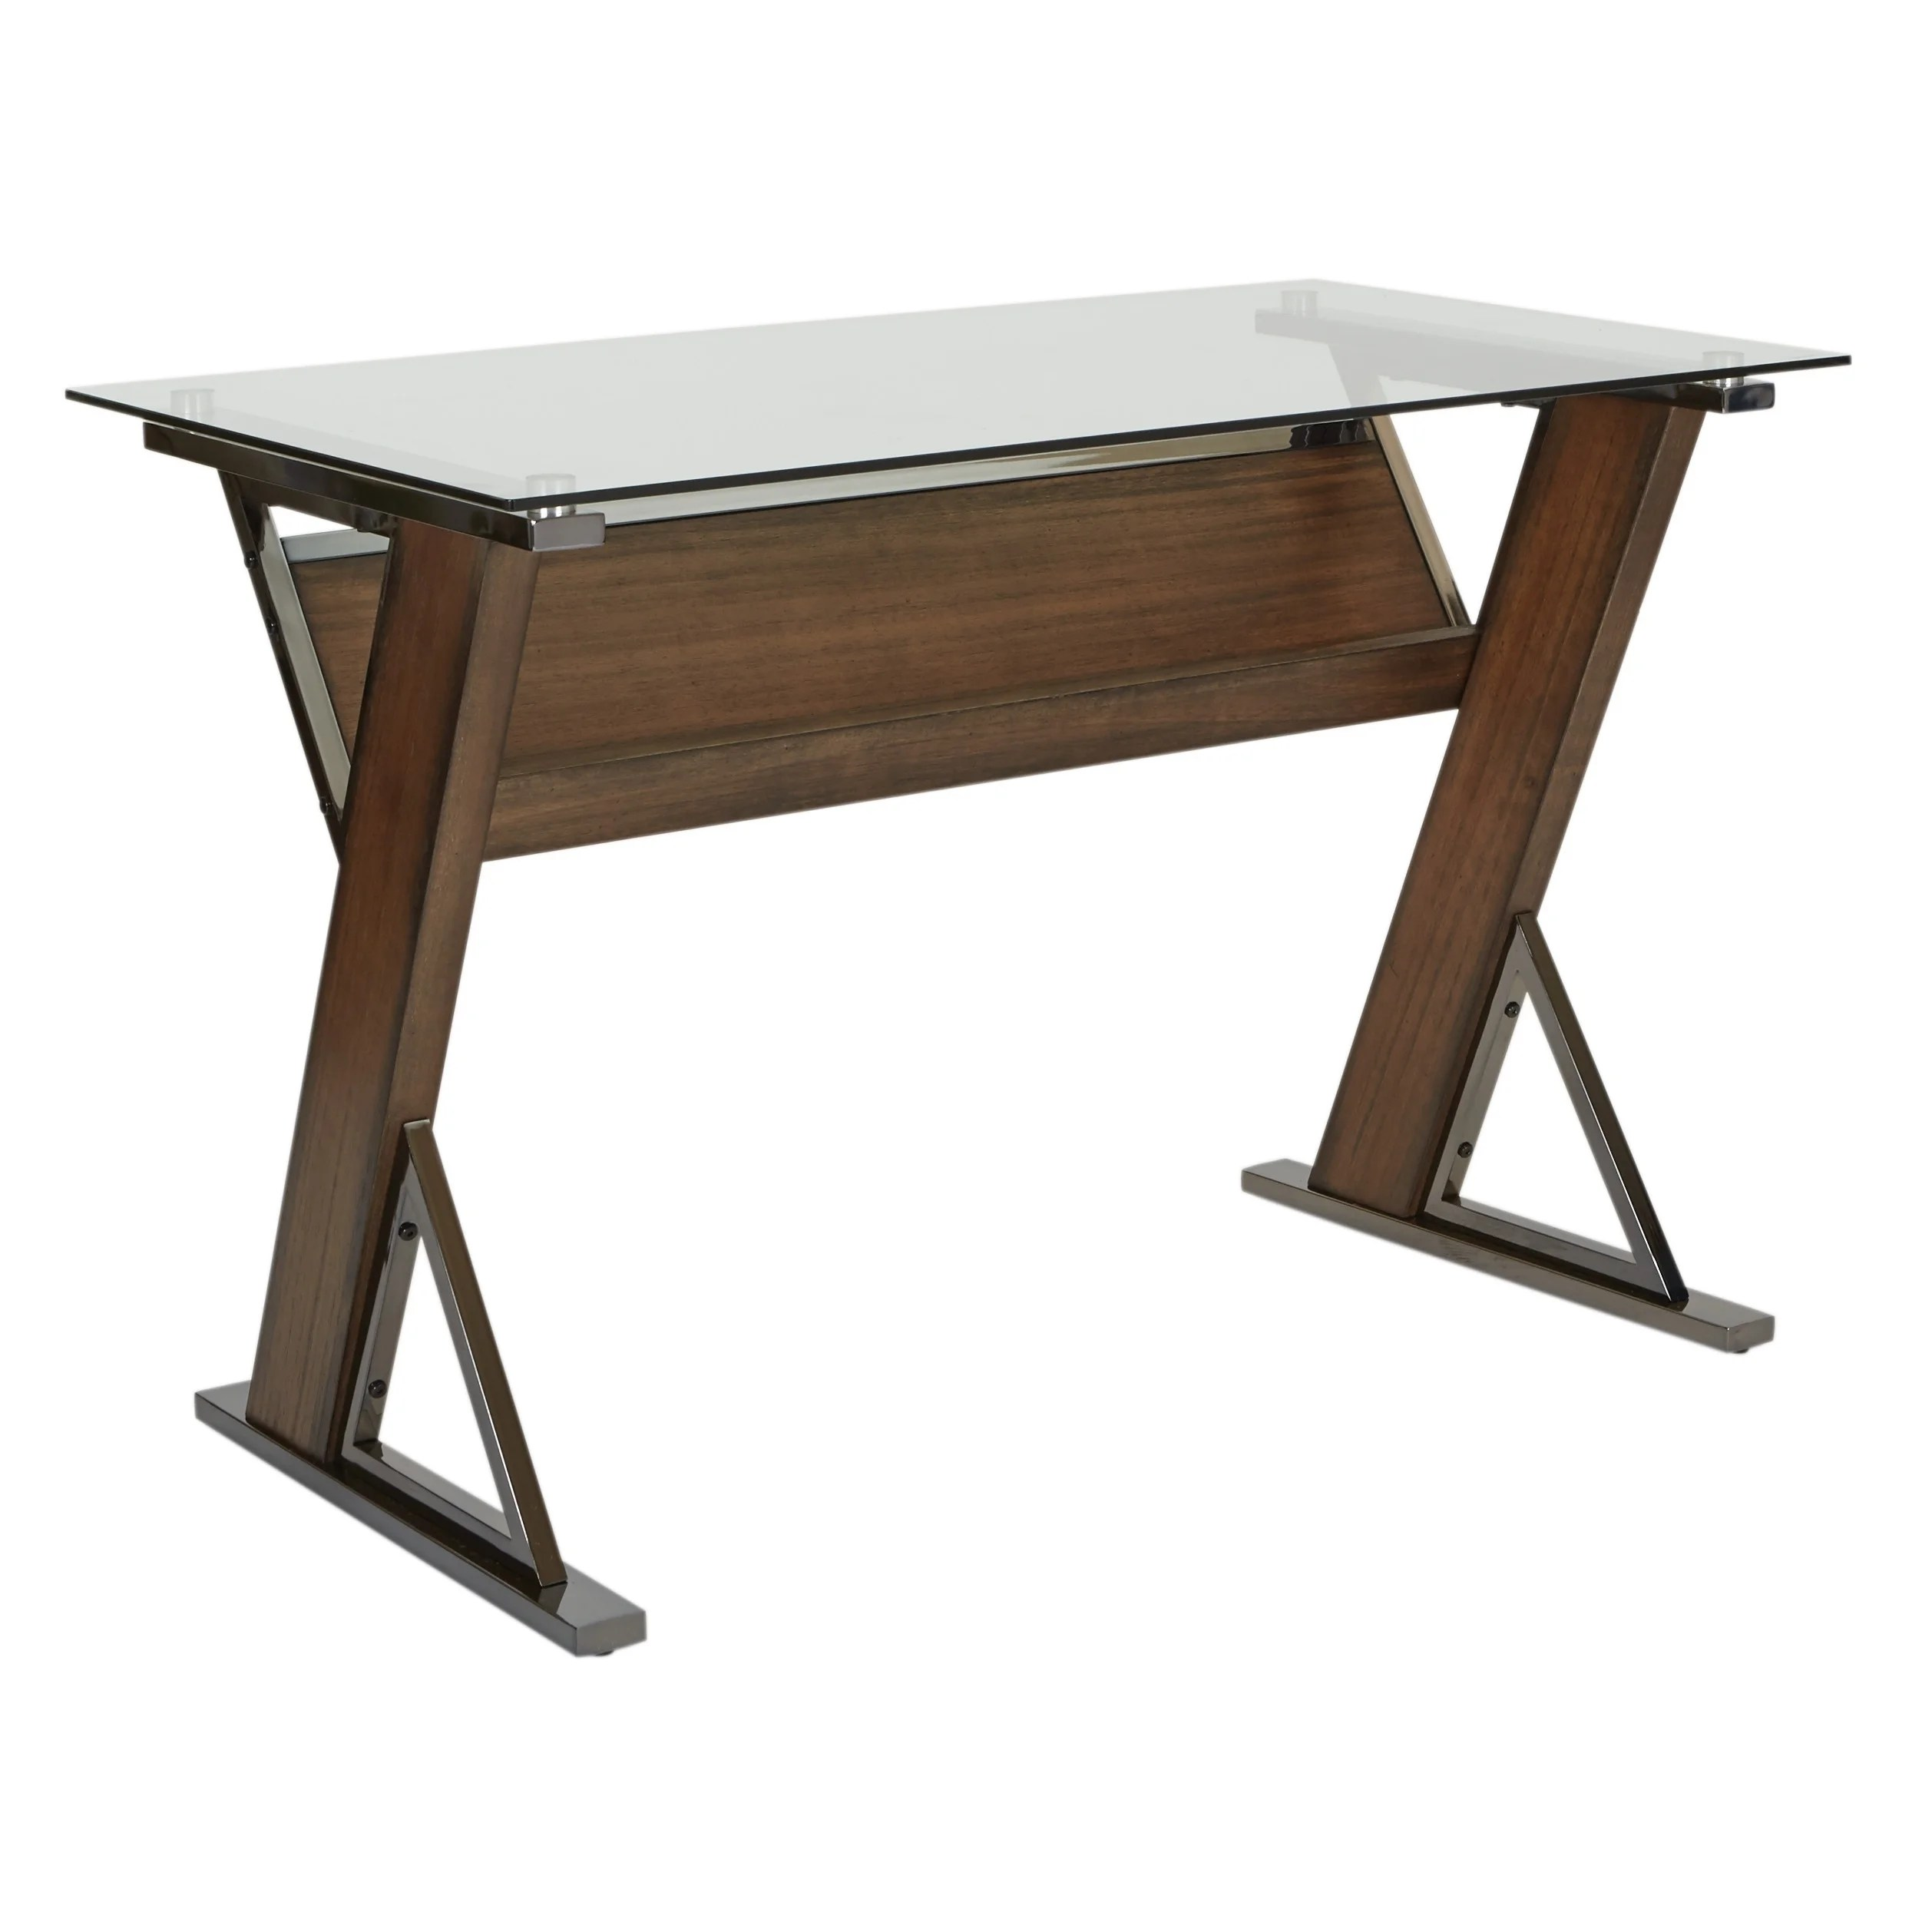 Long Wood Desk Details About Osp Home Furnishings Eureka Long Desk With Tempered Glass Top And Caramel Wood